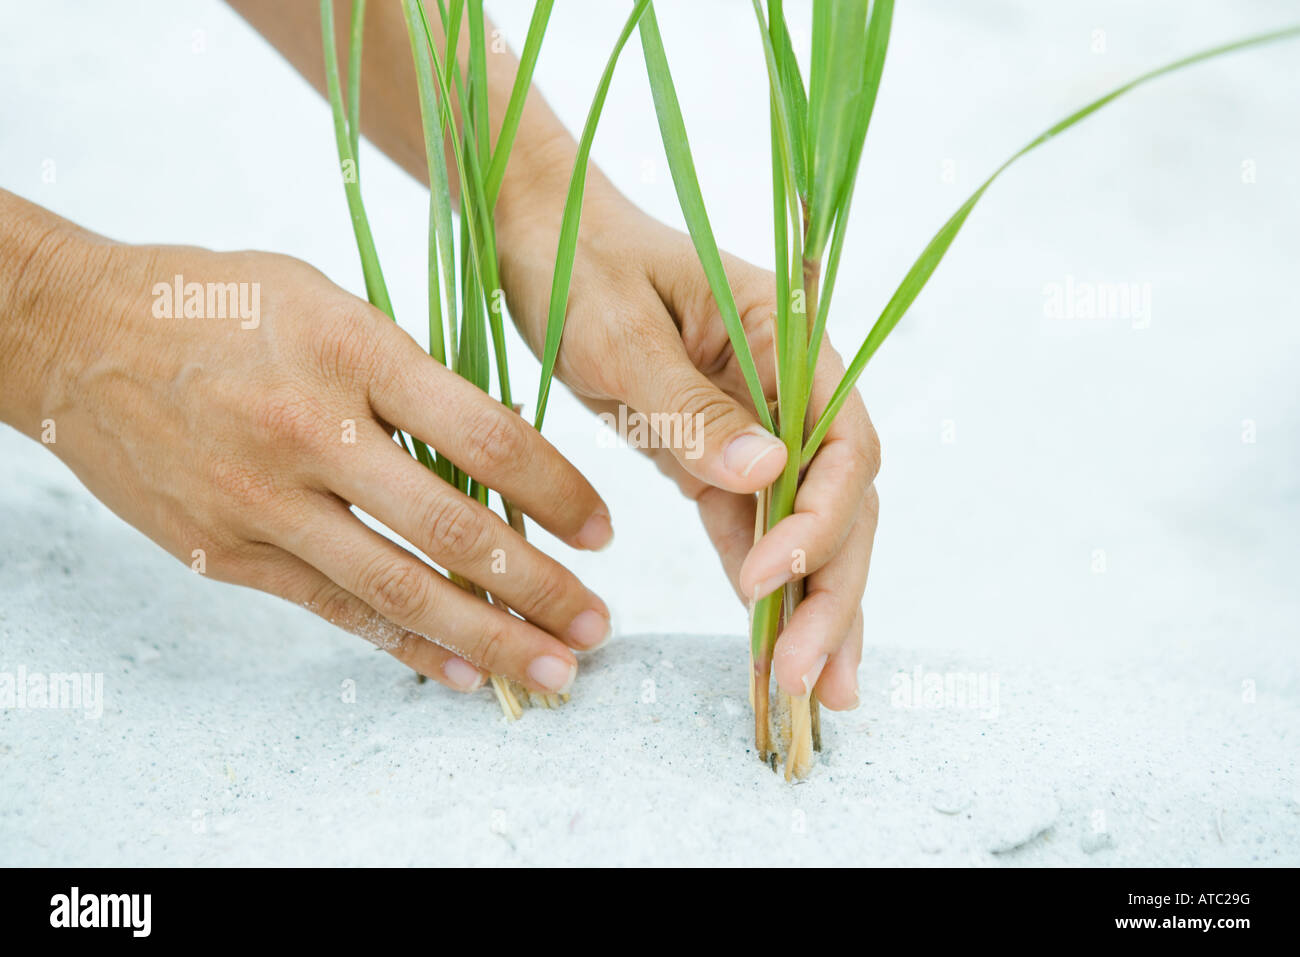 Hands holding dune grass growing in sand, close-up - Stock Image